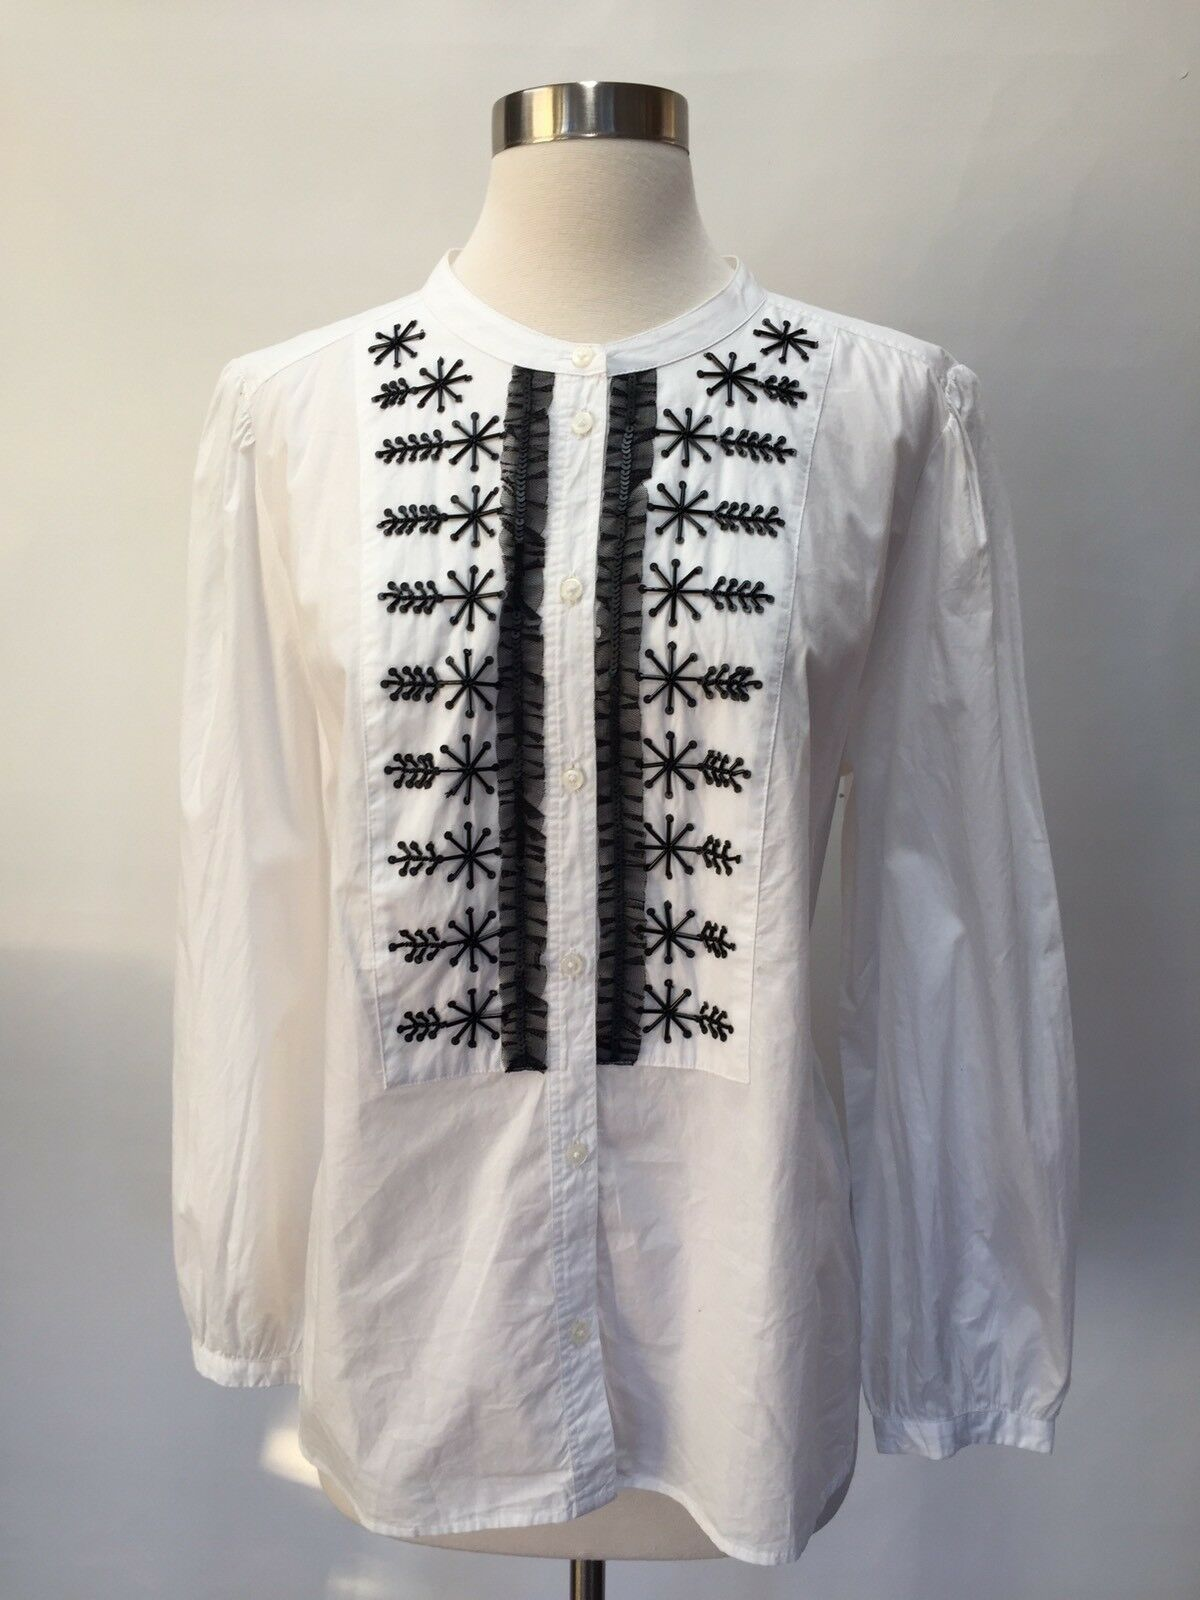 NWT JCREW  Embellished button-up shirt in Weiß poplin Größe L Weiß H3827